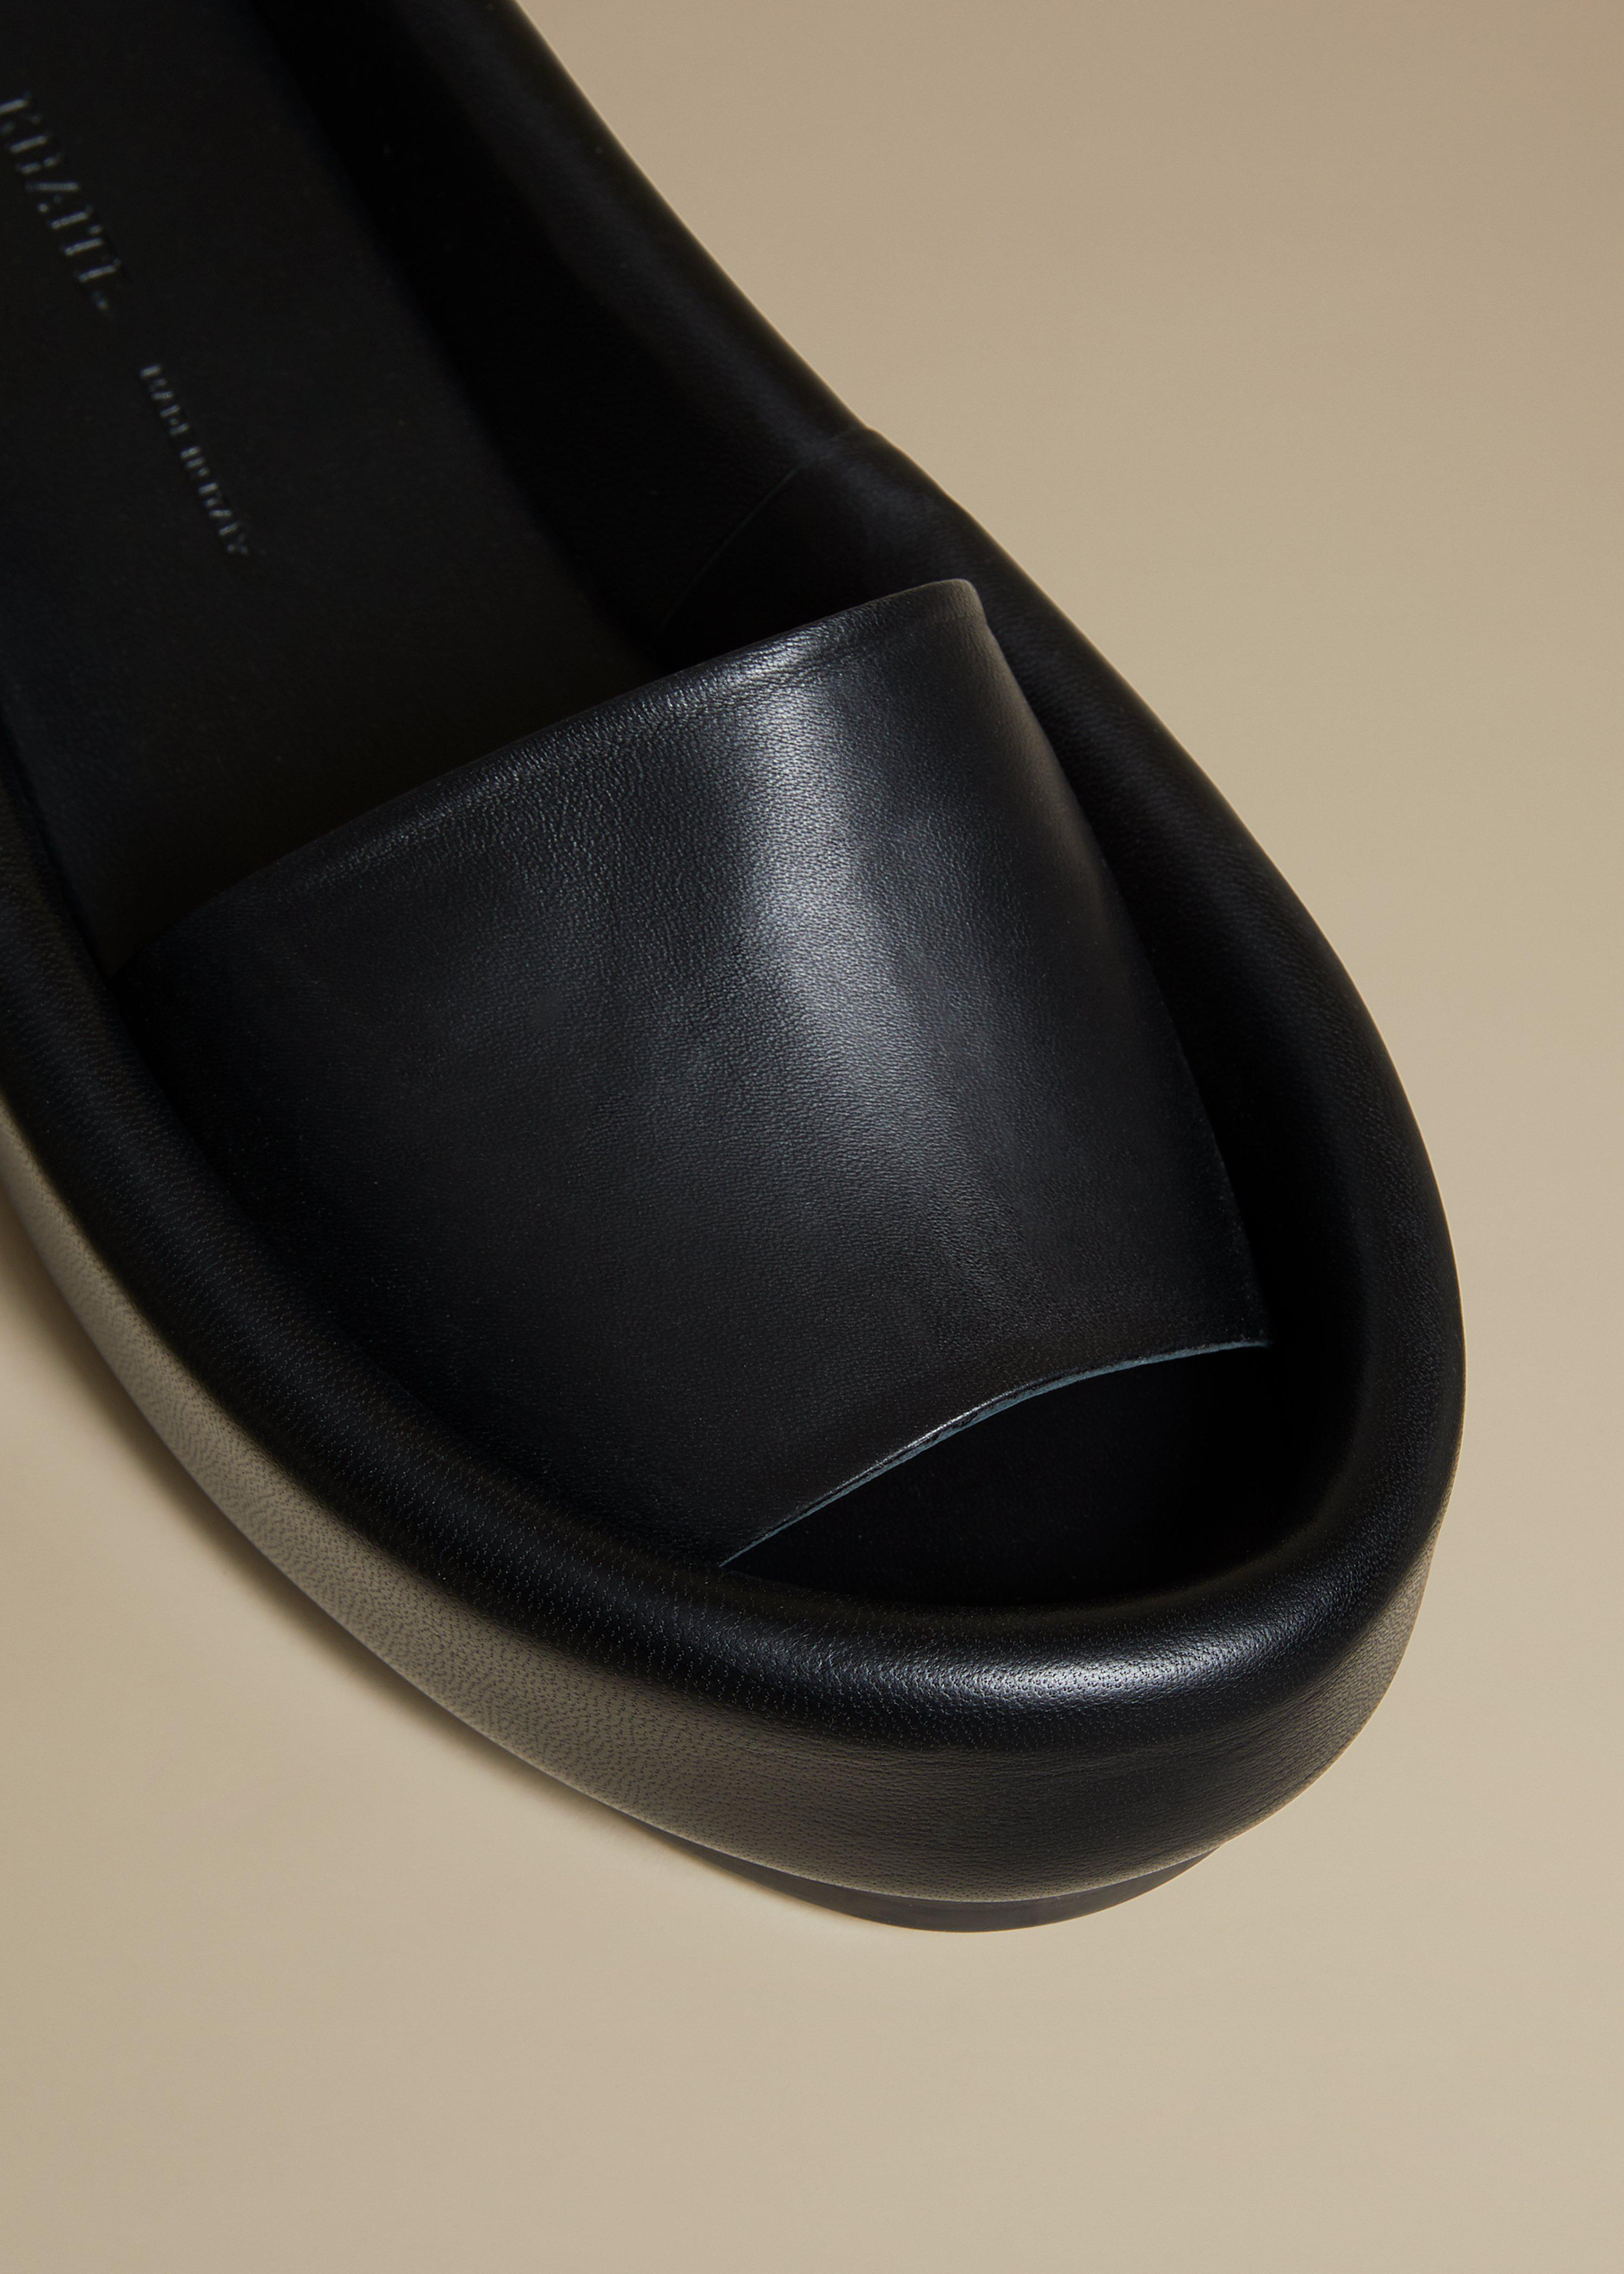 The Venice Sandal in Black Leather 2